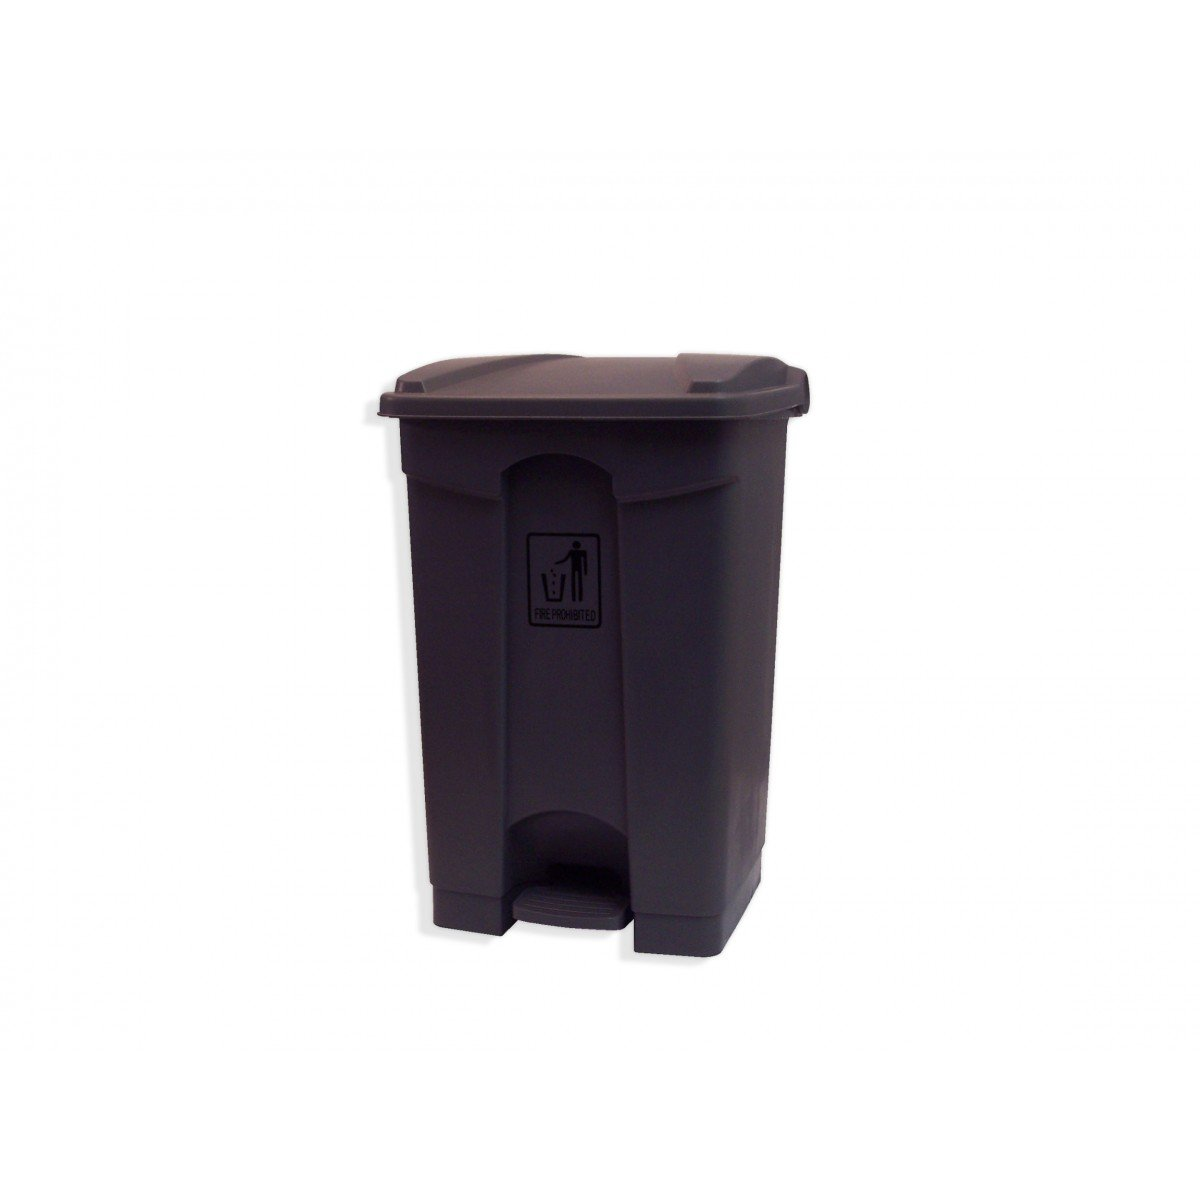 GARBAGE CAN WITH LID AND FOOT PEDAL - 47.5 QT (45 L ) - BLACK Johnny Vac